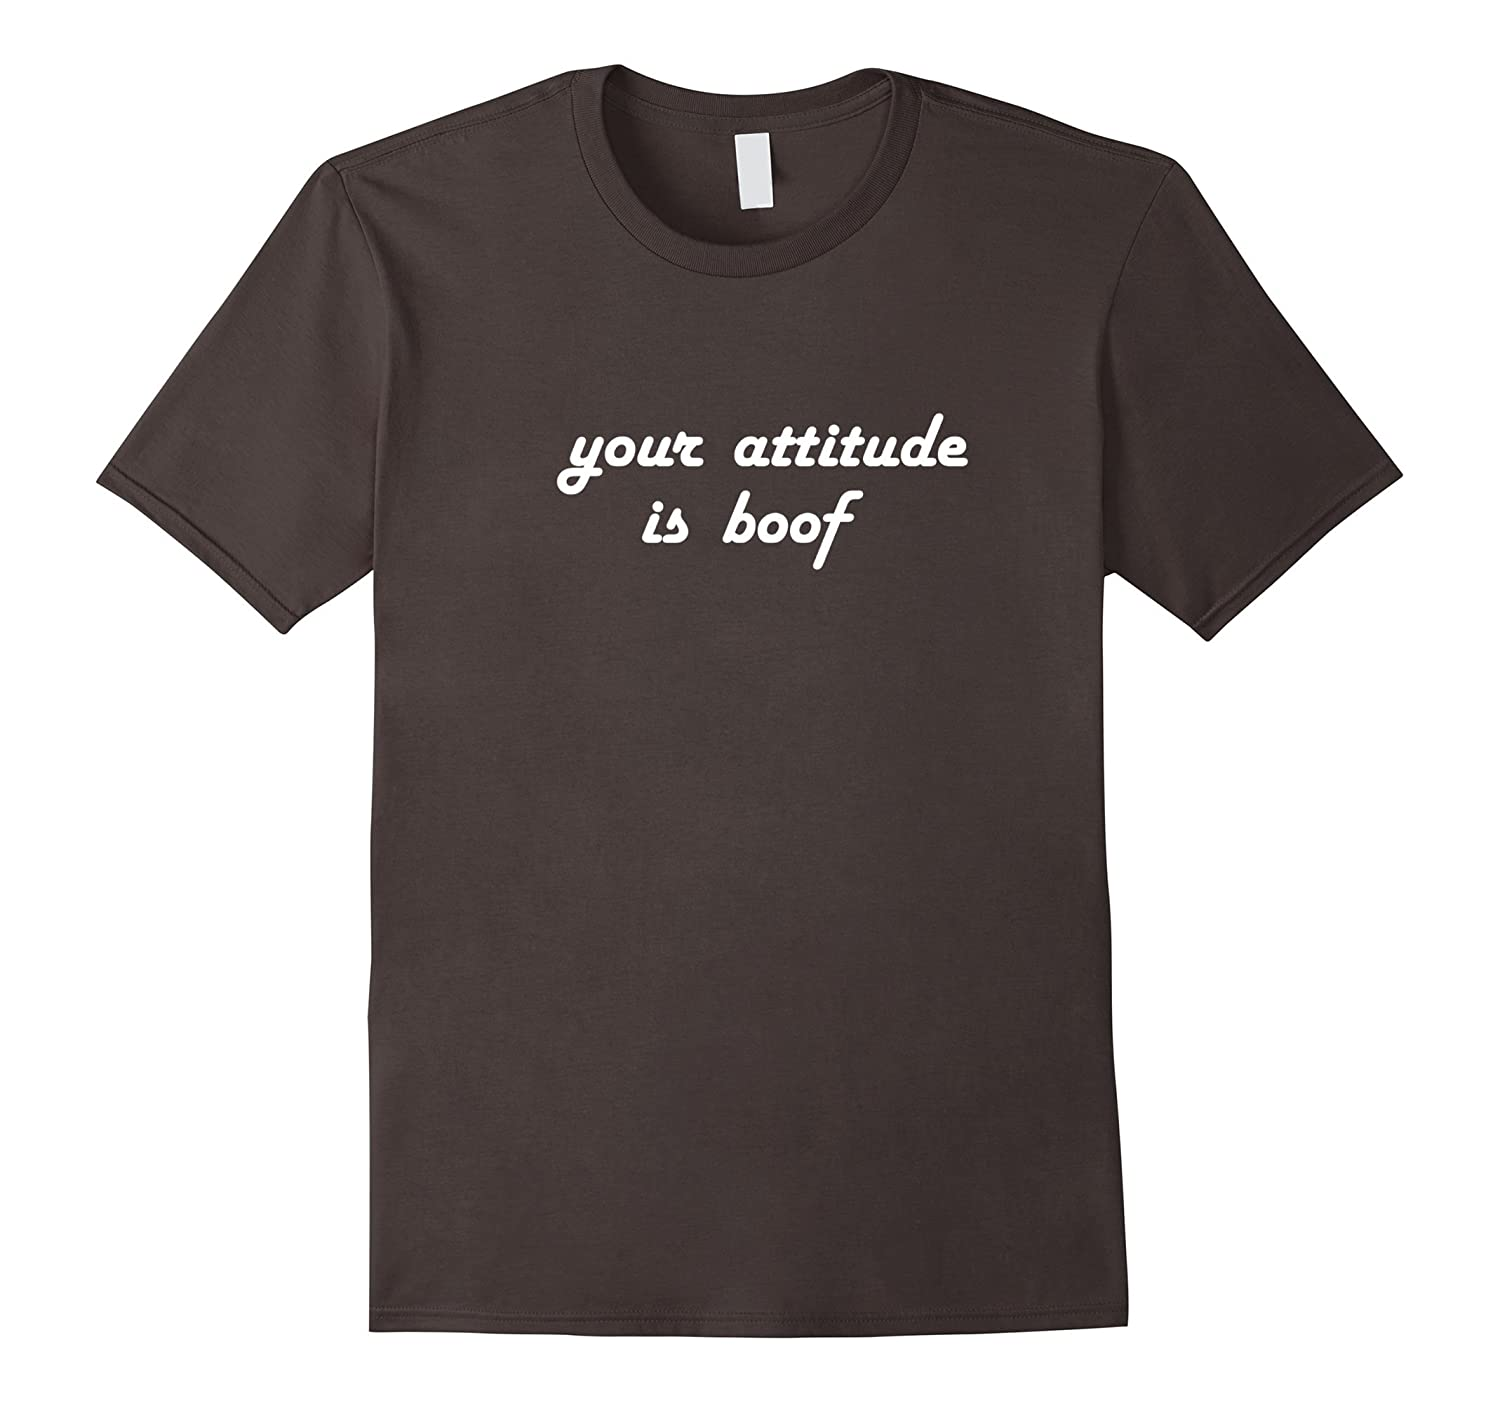 'Your Attitude is Boof' T-shirt-BN